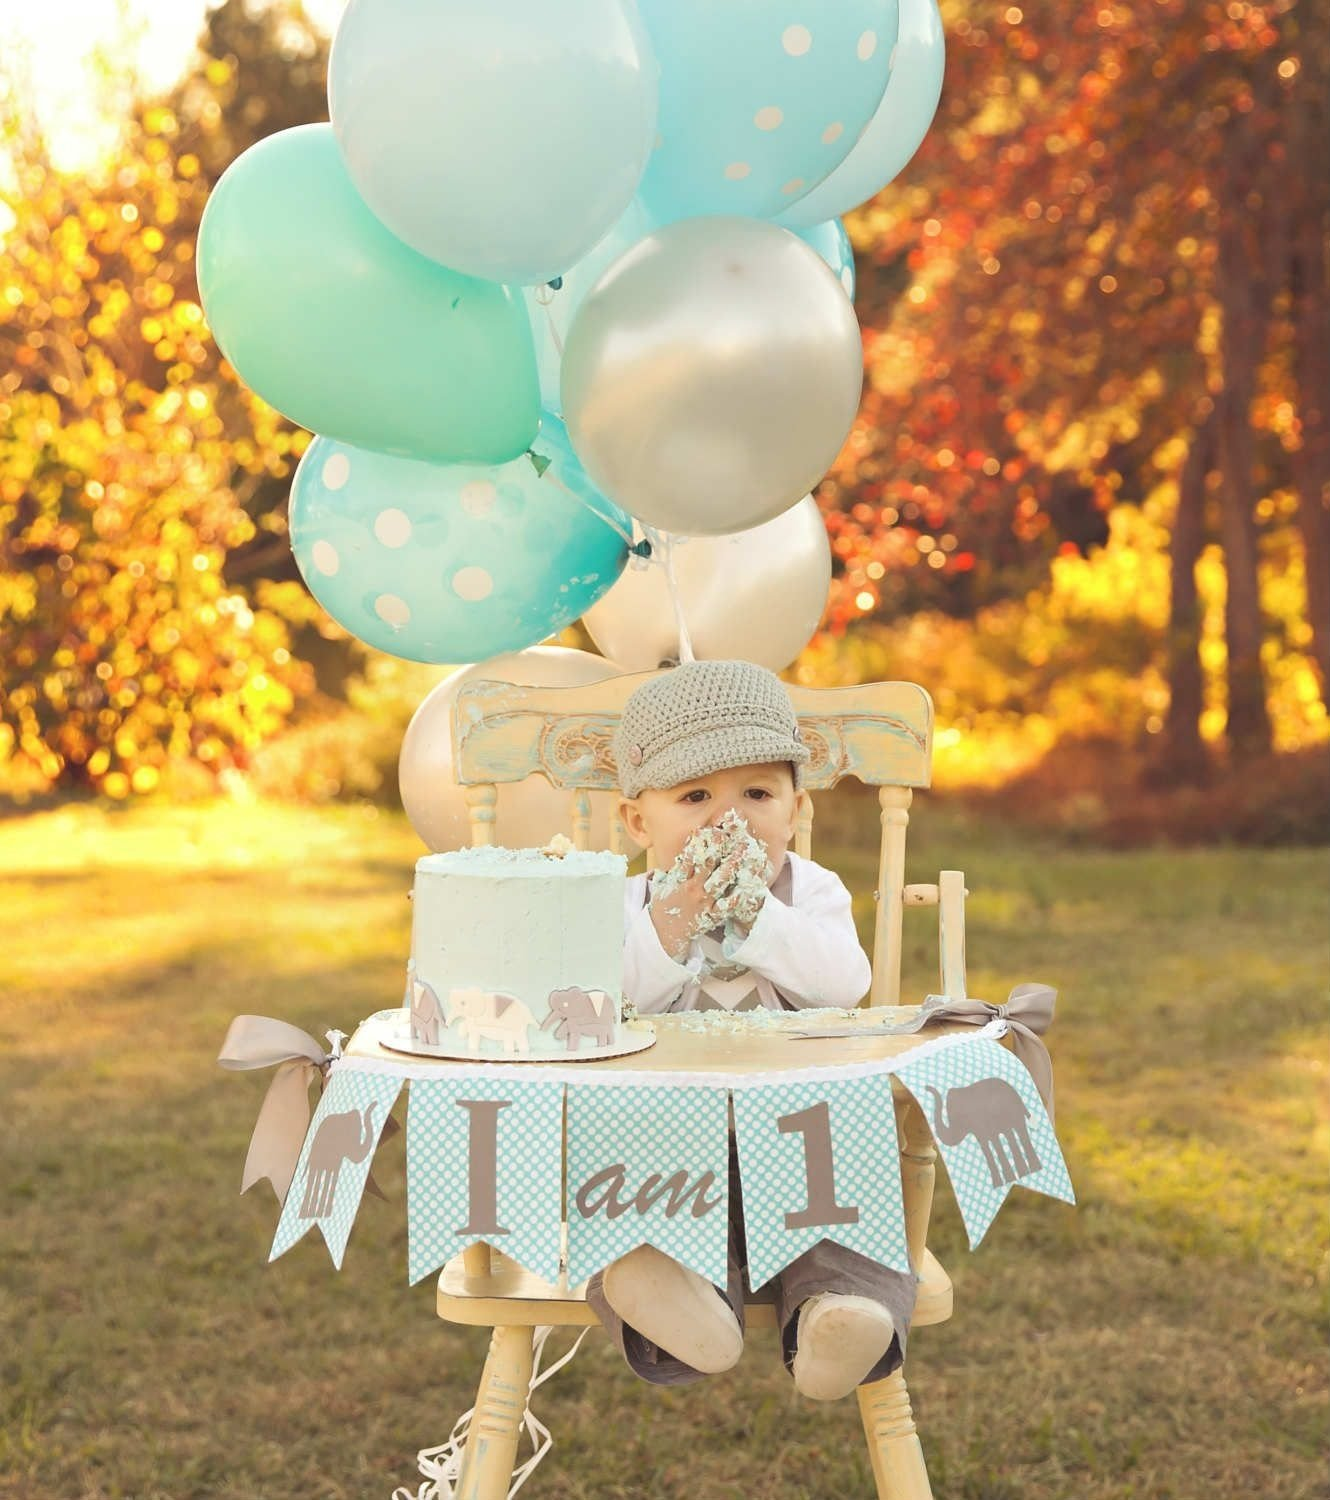 10 Perfect Ideas For 1St Birthday Party 10 1st birthday party ideas for boys part 2 birthday decorations 8 2020